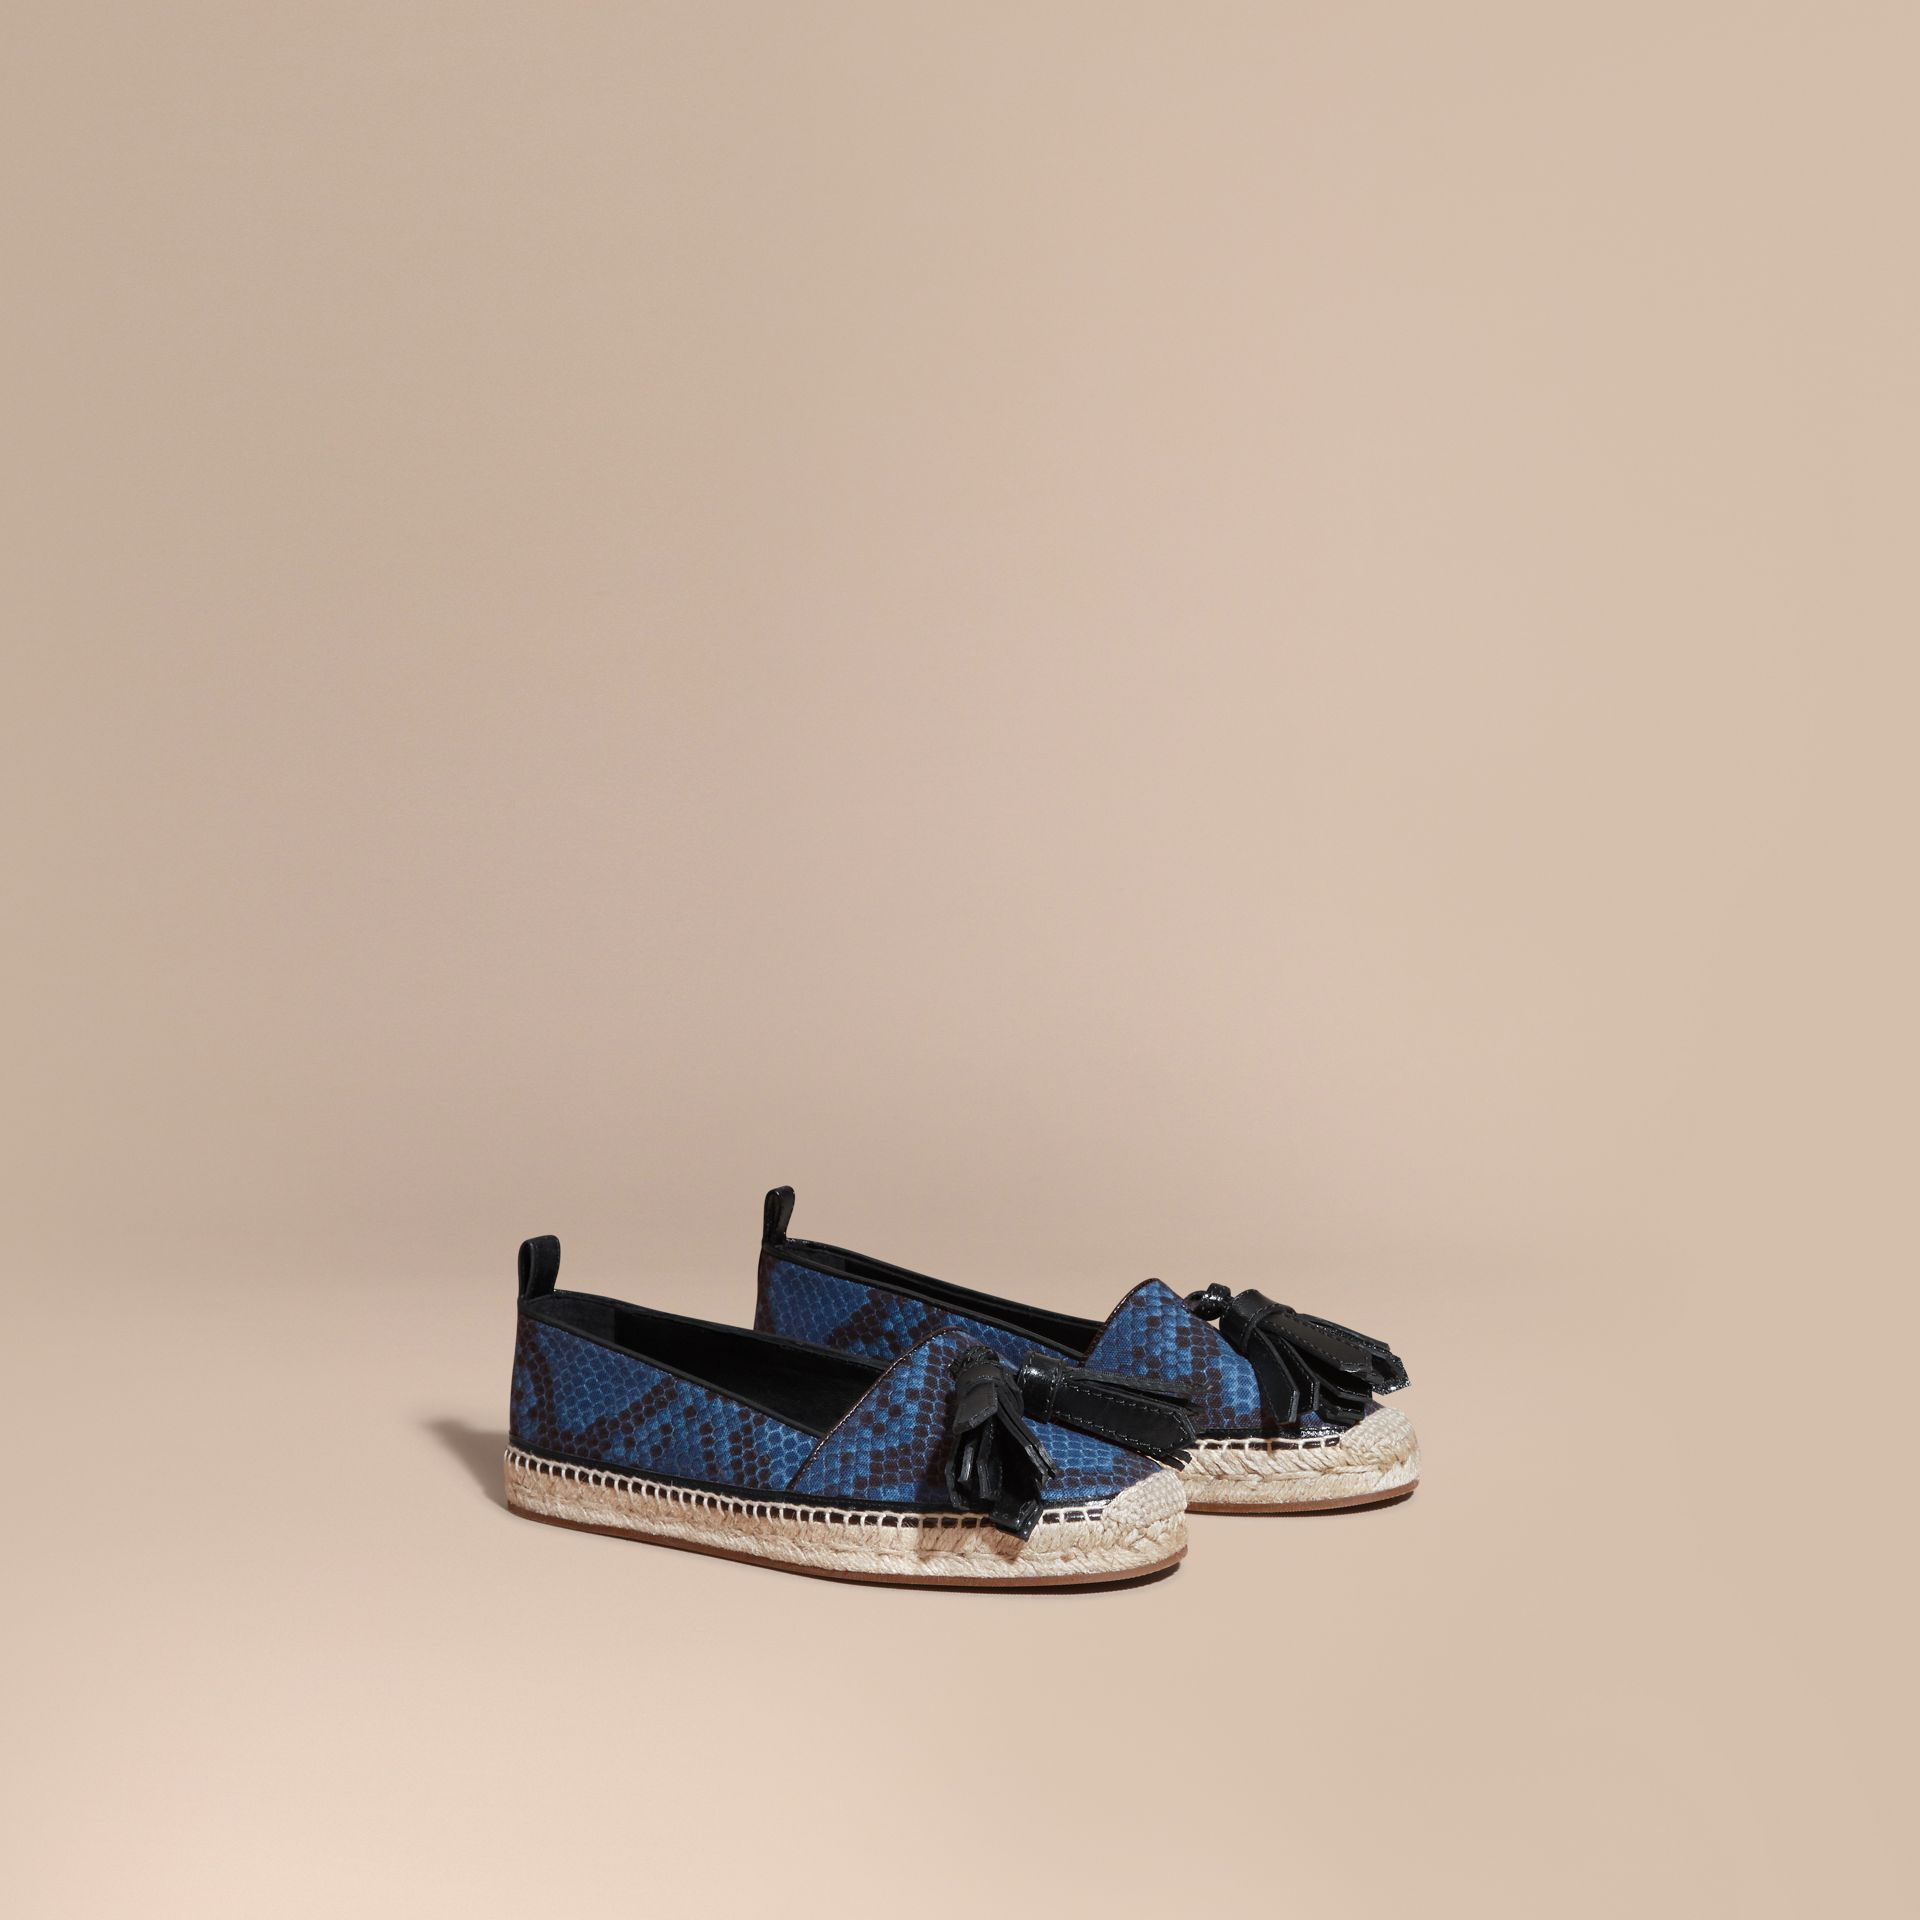 Mineral blue Tasselled Python Print Cotton and Leather Espadrilles Mineral Blue - gallery image 1